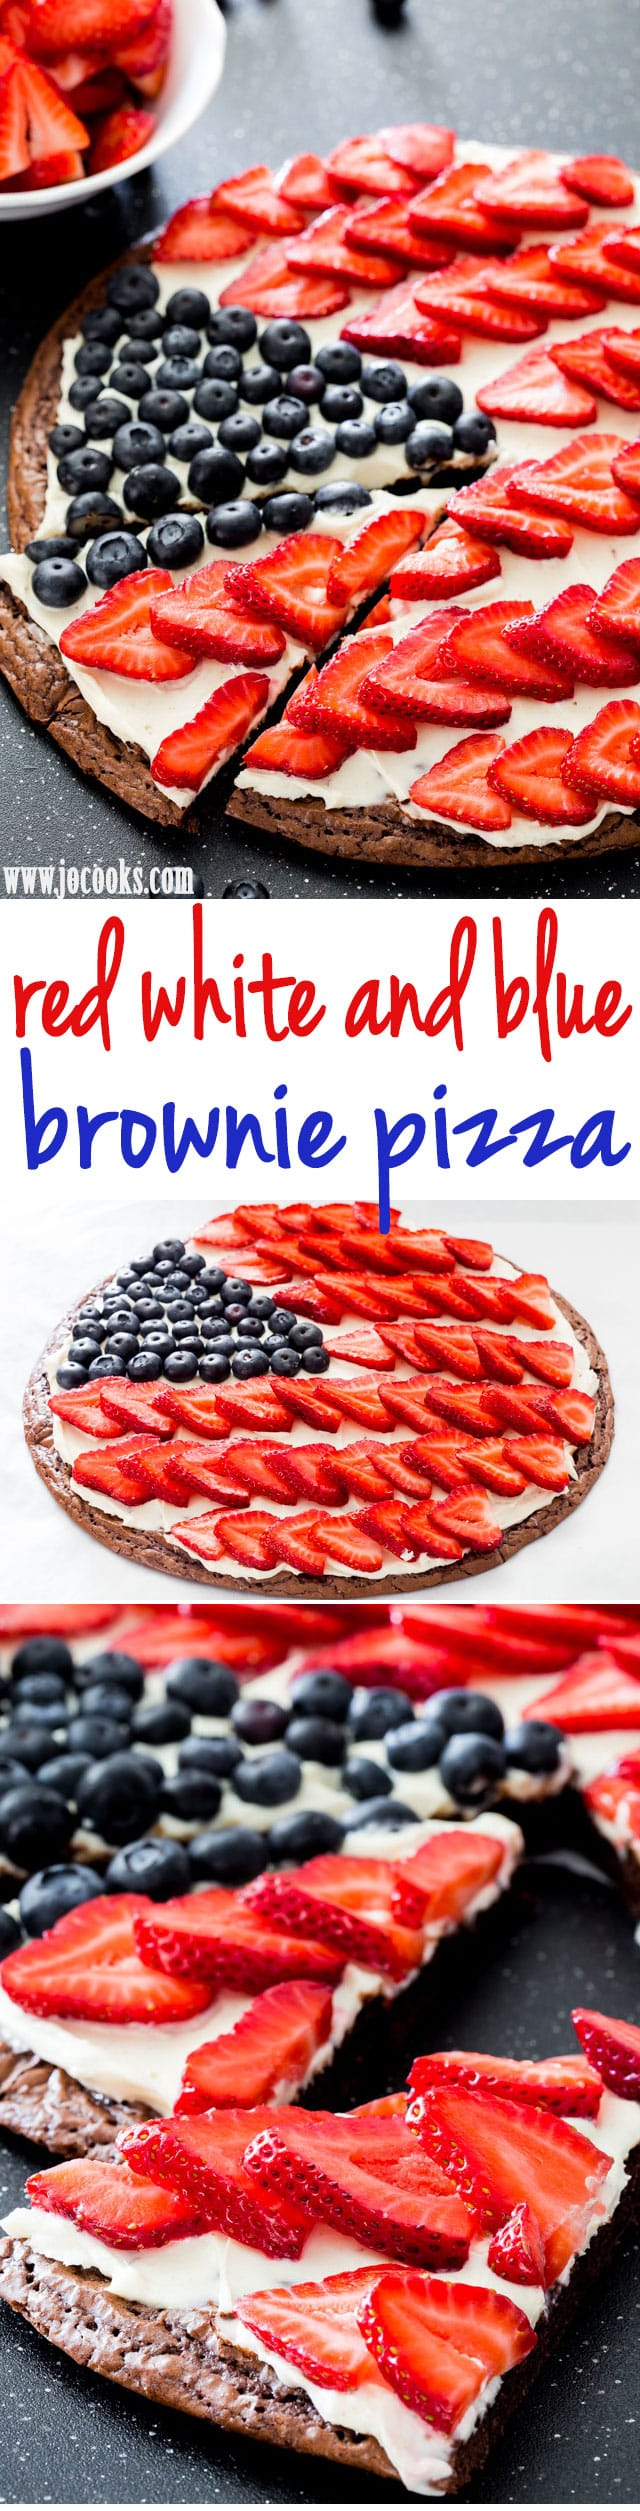 Red White and Blue Brownie Pizza - the perfect dessert for your 4th of July celebration. A delicious brownie crust topped with a cream cheese frosting and loaded with berries! #4thofjulydesserts #redwhiteandblue #browniepizza